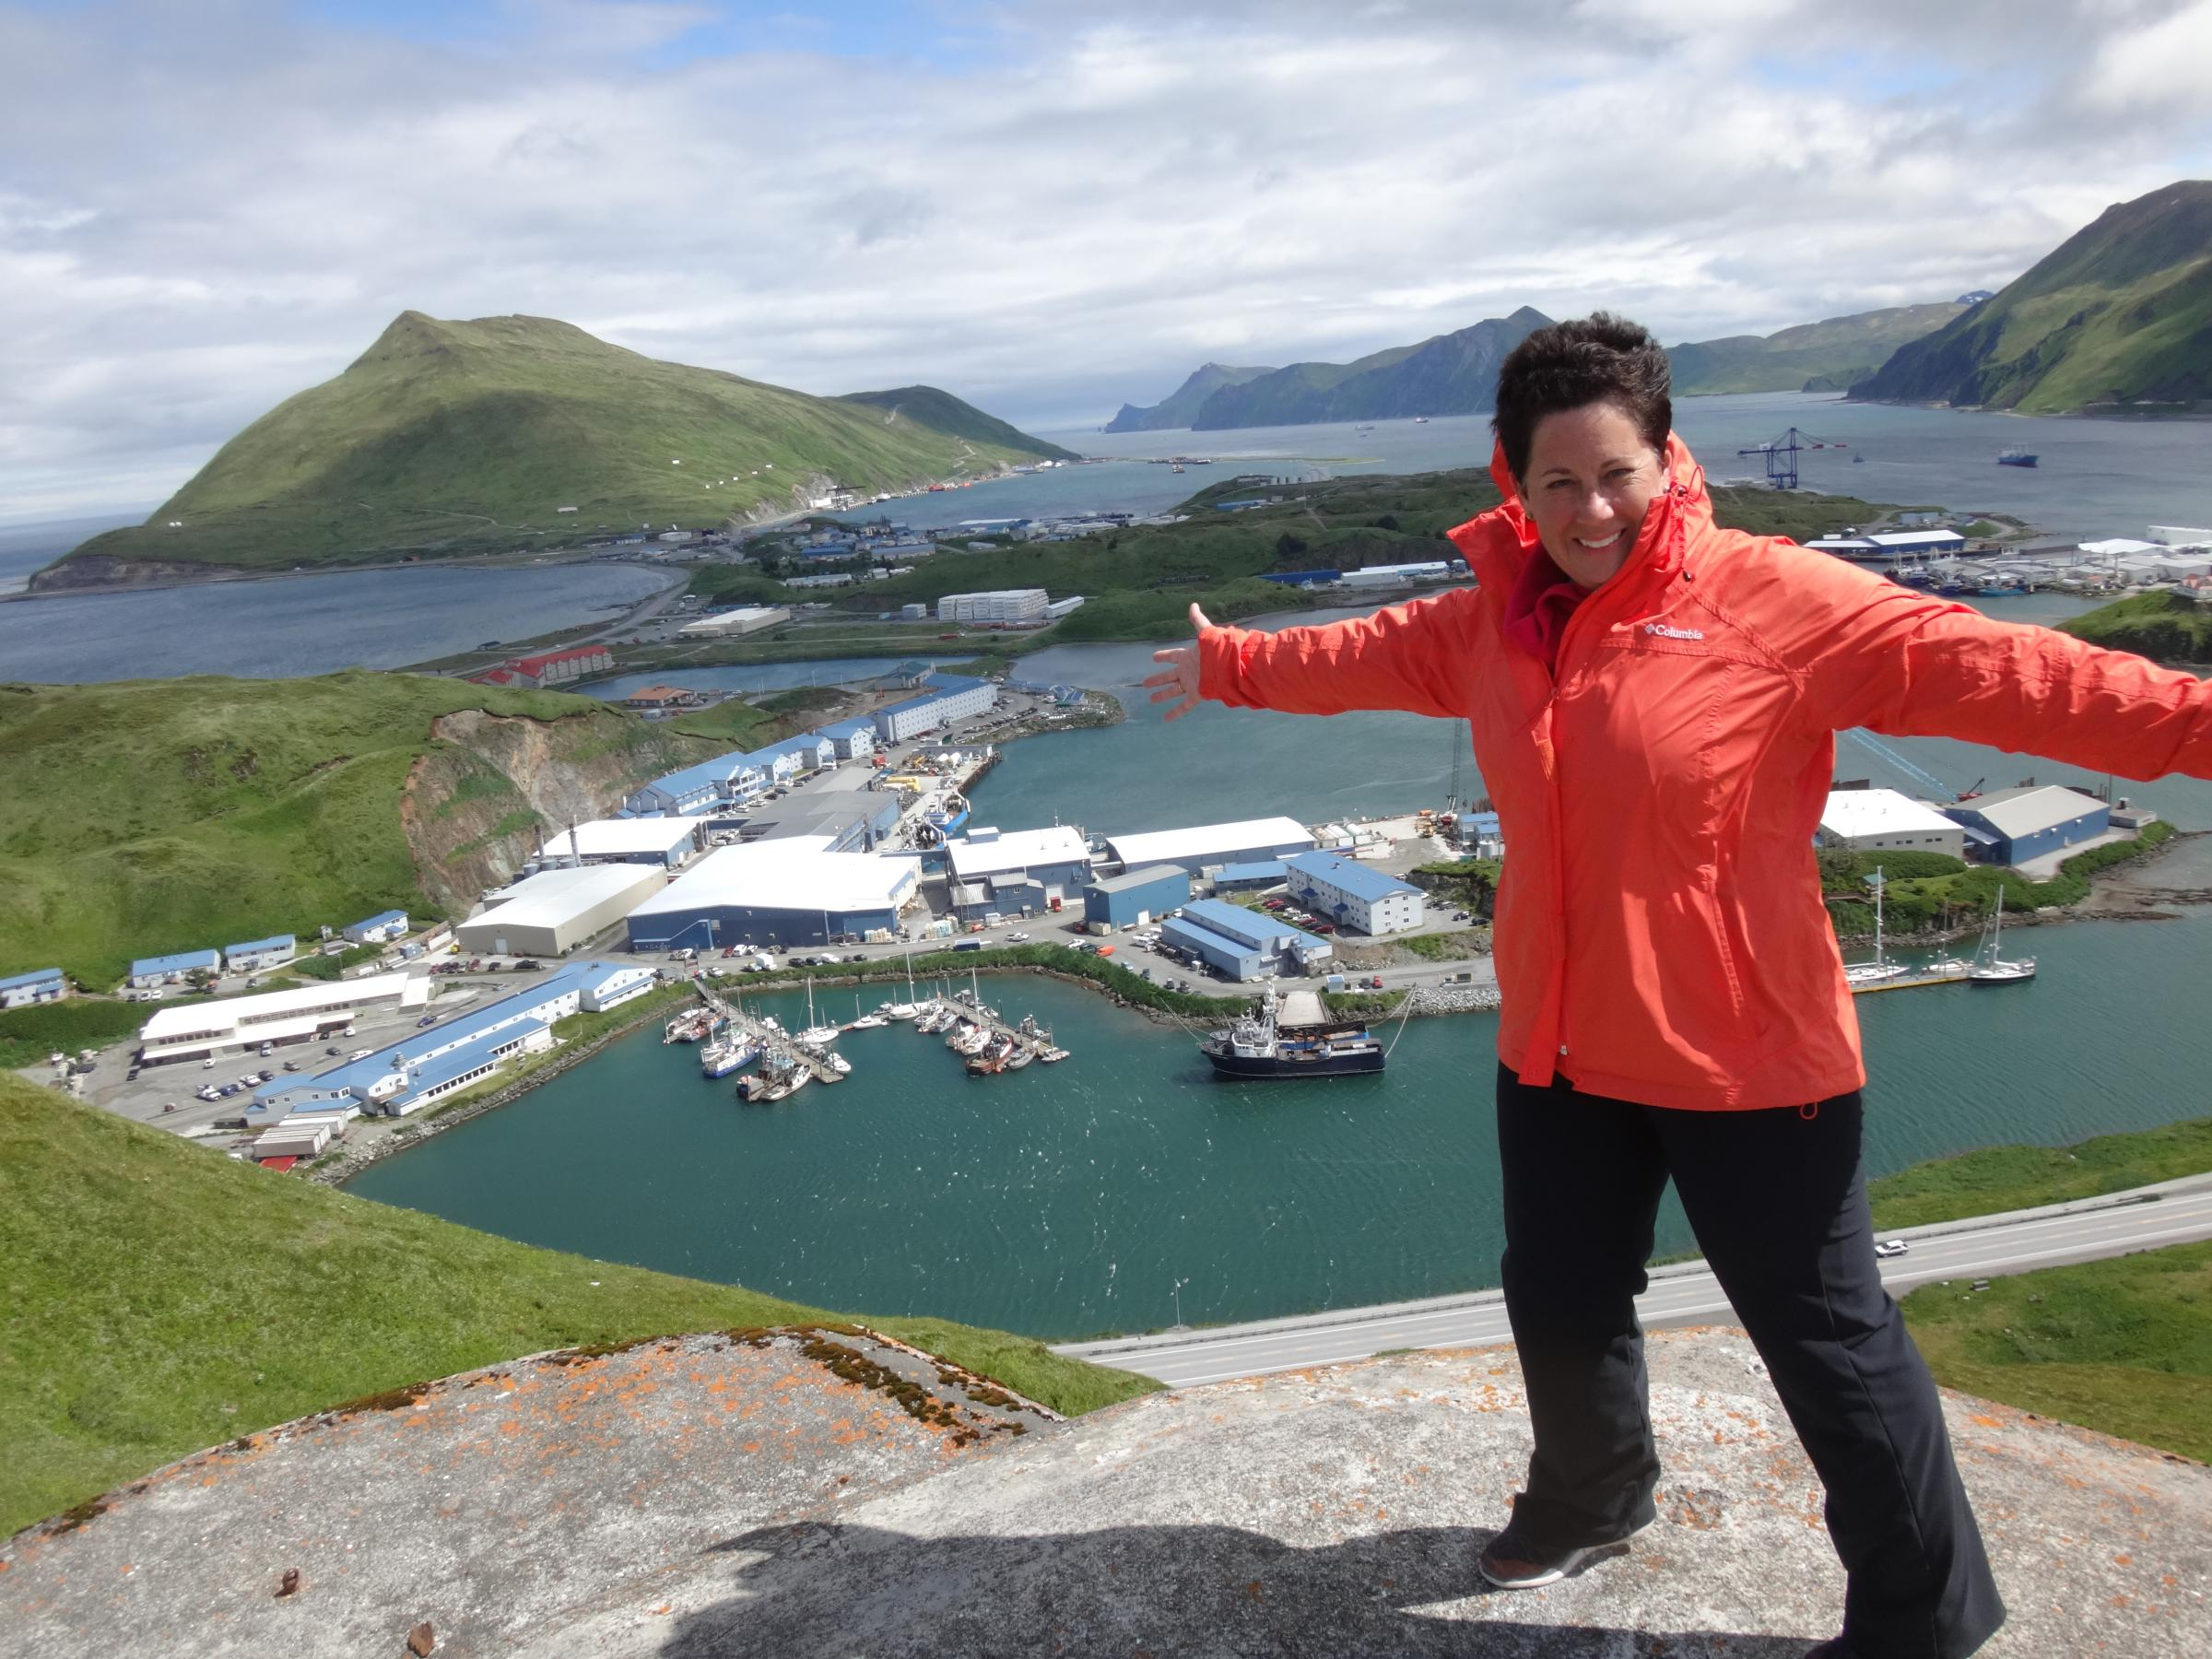 Karen Abel on Bunker Hill in Unalaska